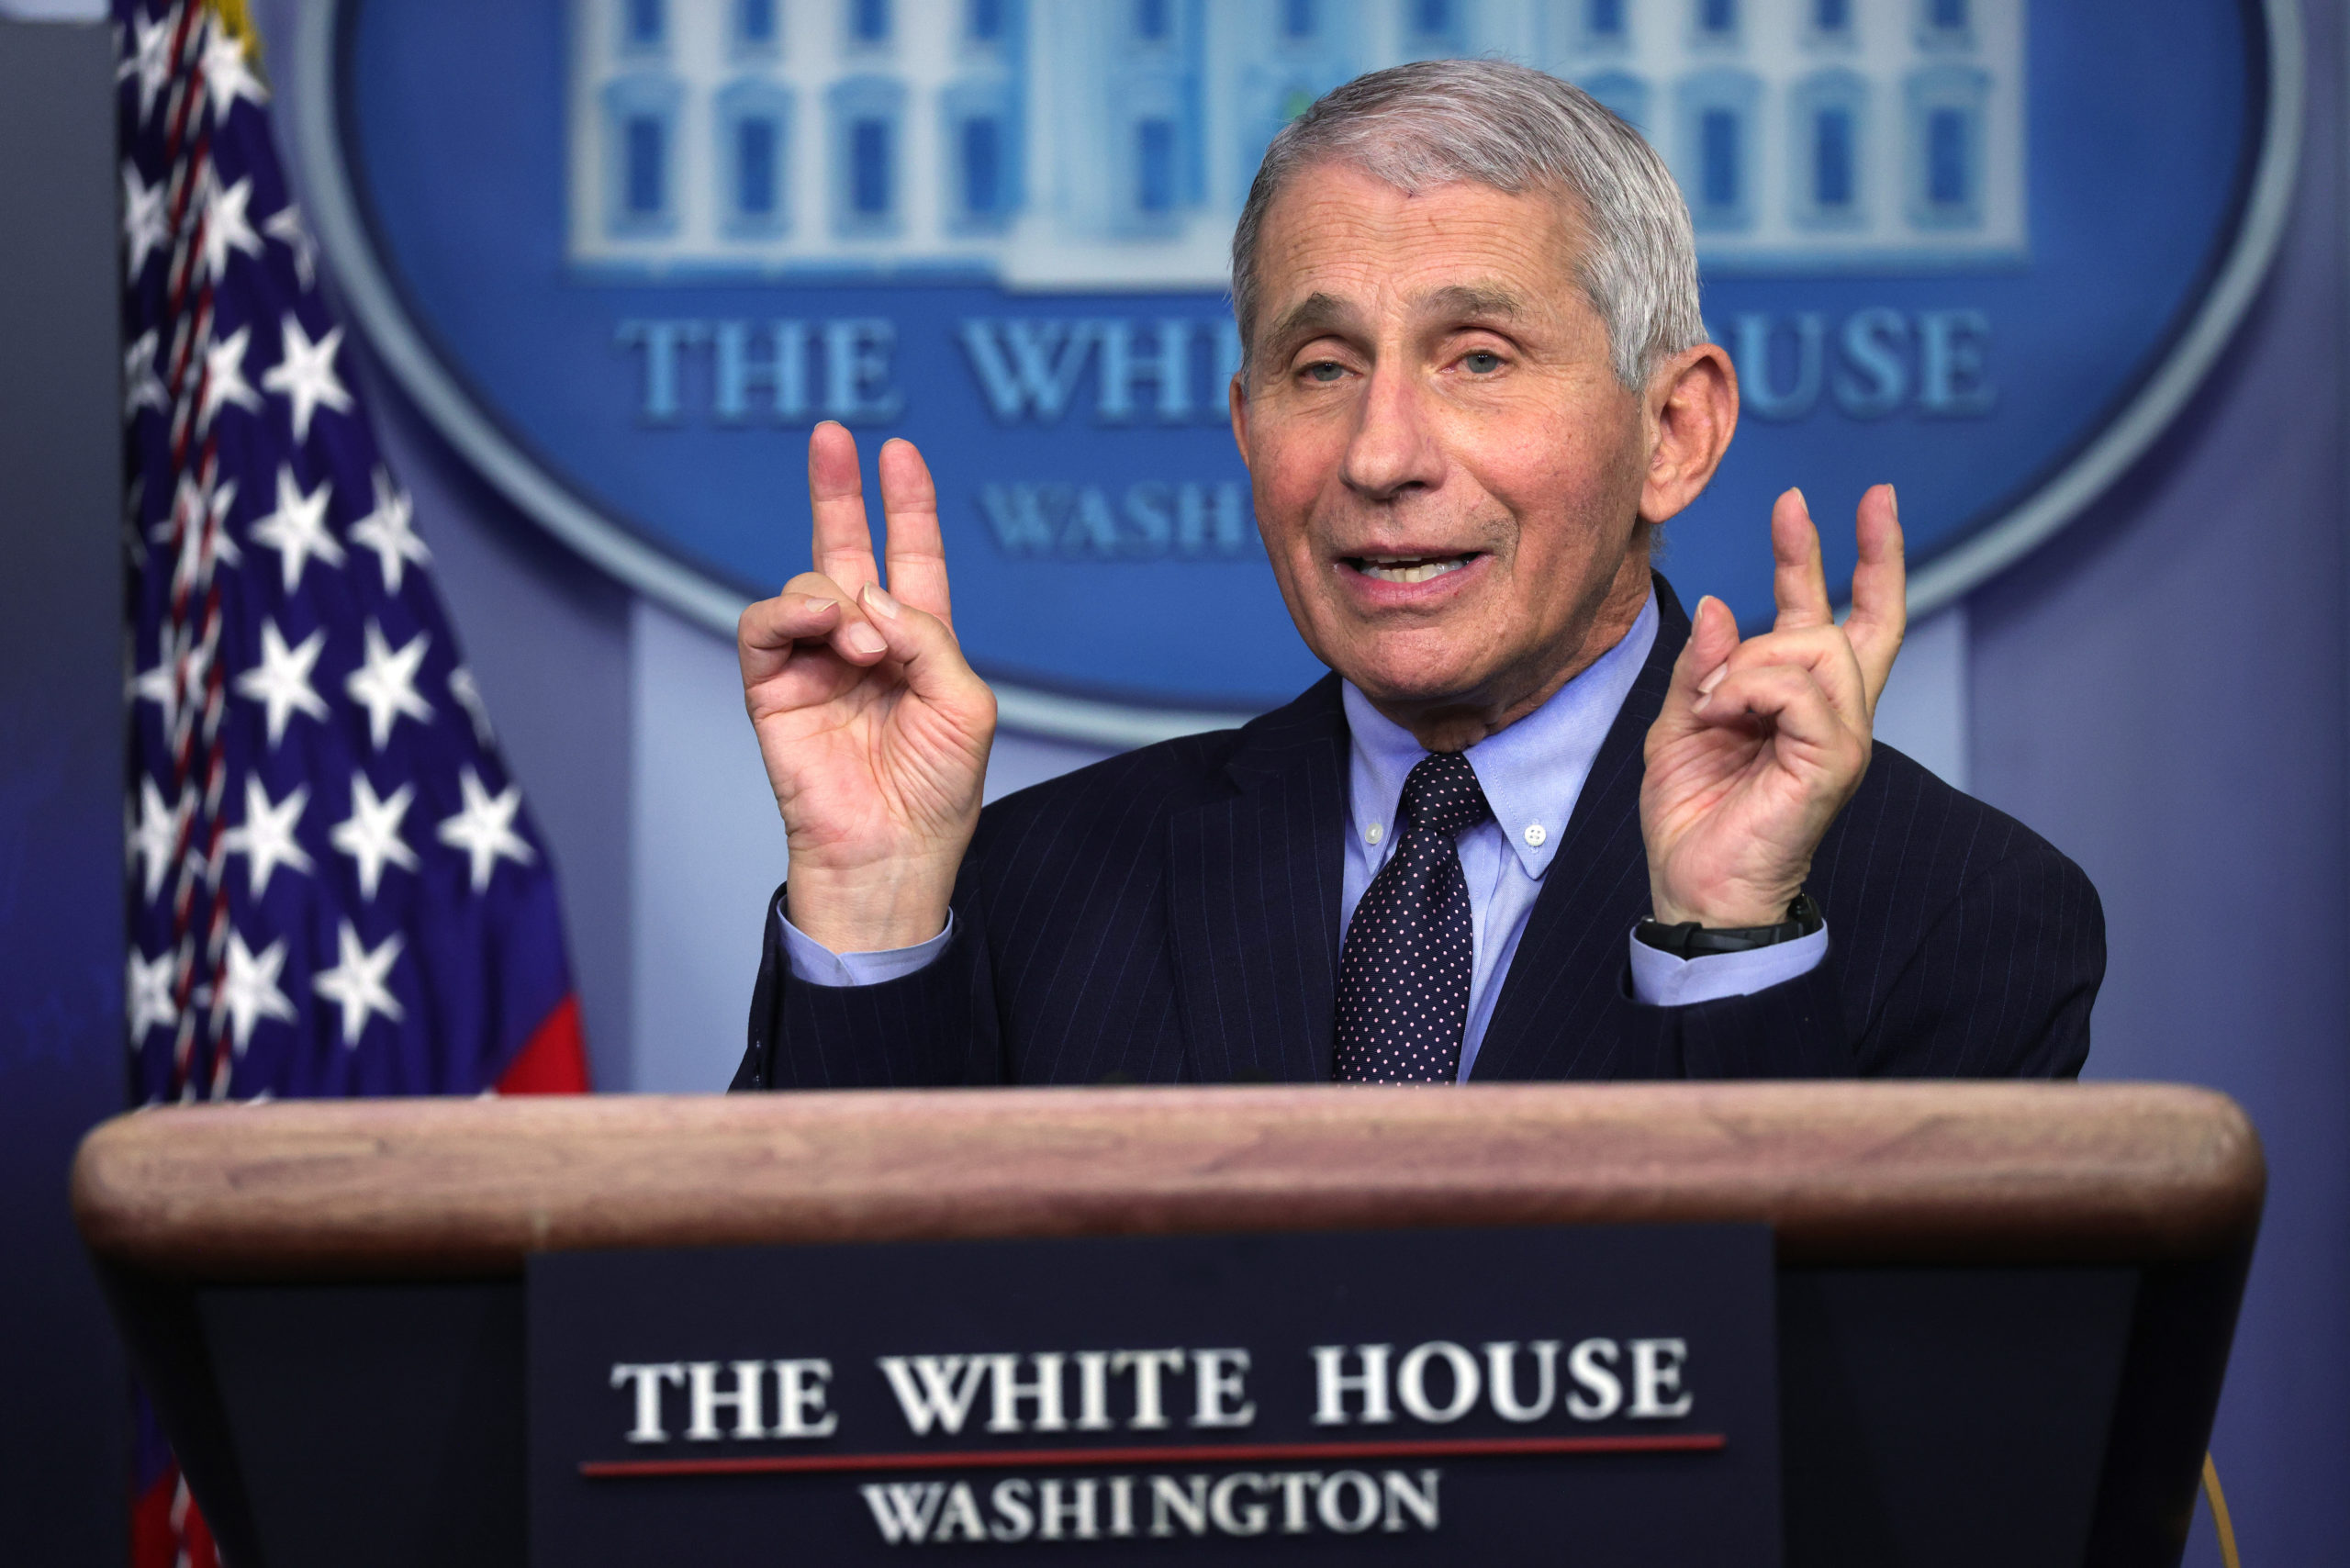 Dr Anthony Fauci, Director of the National Institute of Allergy and Infectious Diseases, speaks during a White House press briefing, conducted by White House Press Secretary Jen Psaki, at the James Brady Press Briefing Room of the White House January 21, 2021 in Washington, DC. (Alex Wong/Getty Images)